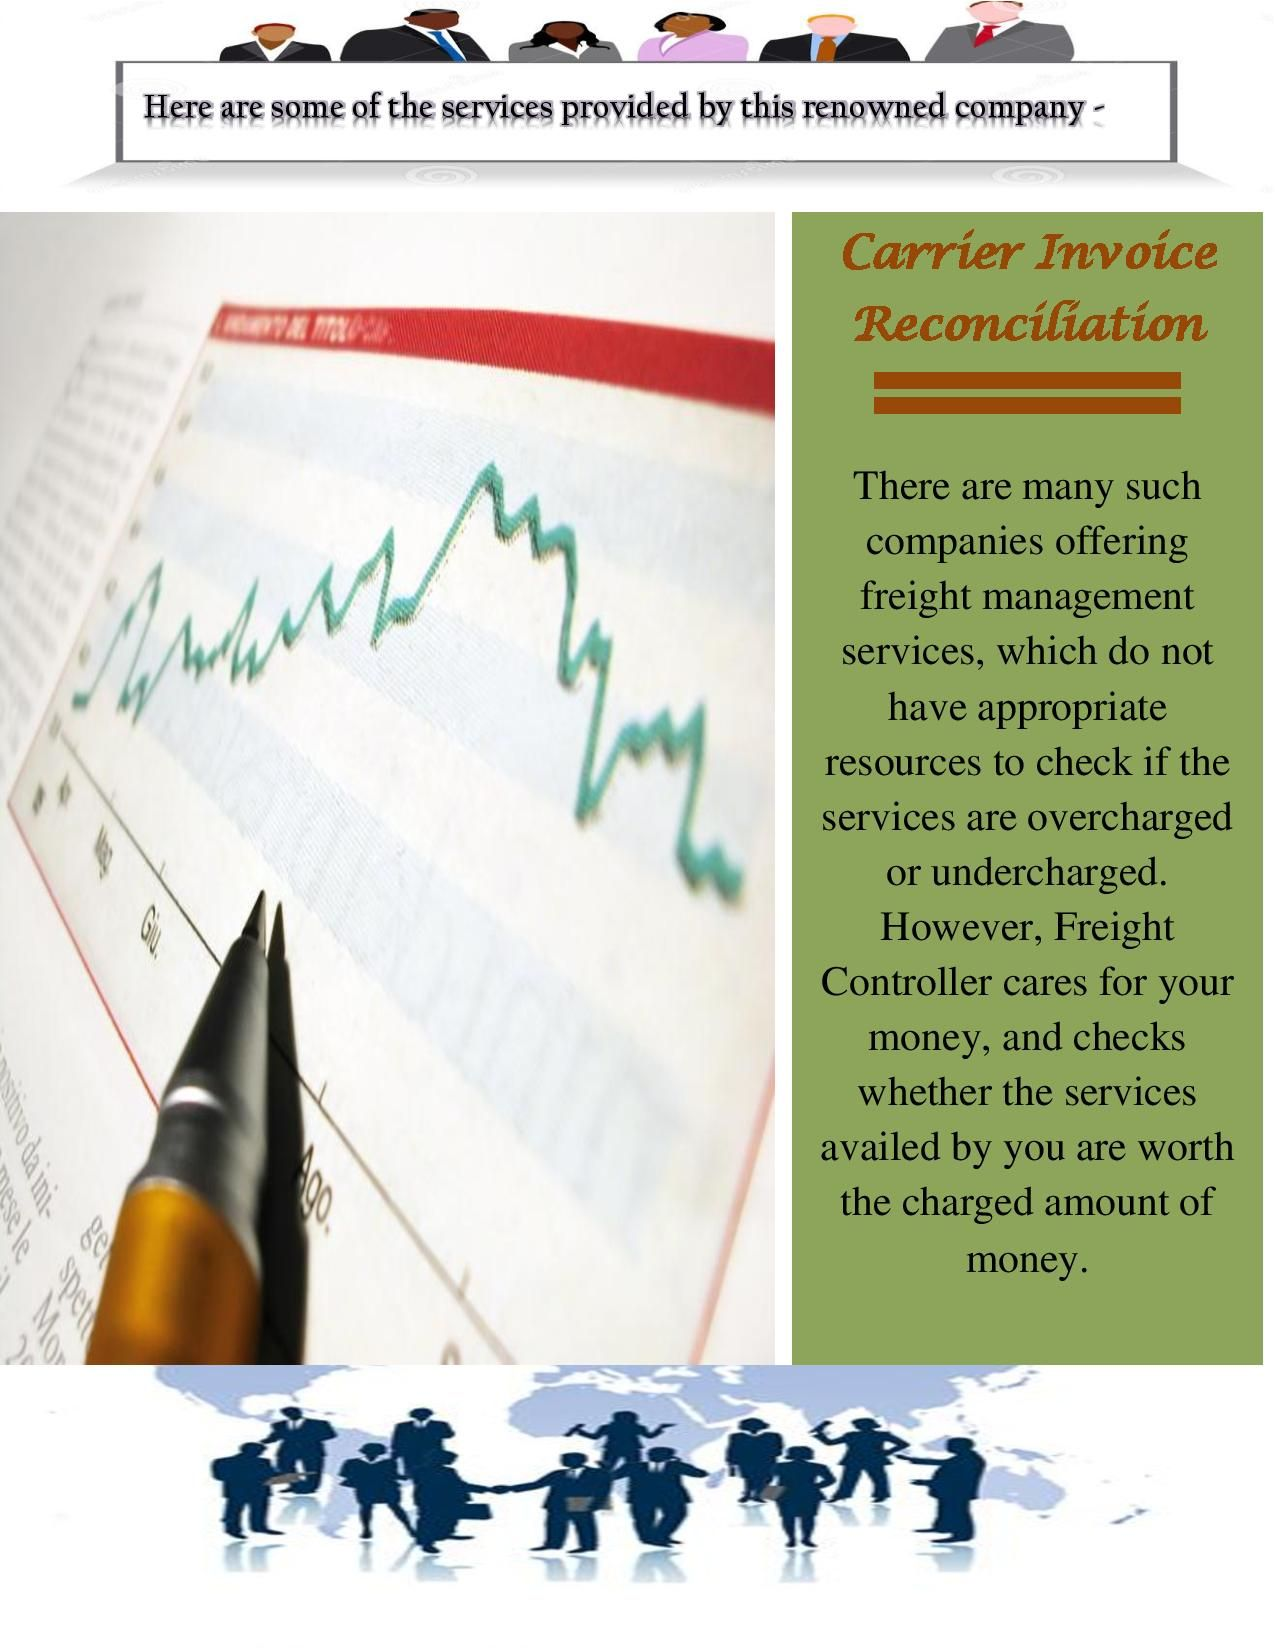 Here are some of the services provided by this renowned company